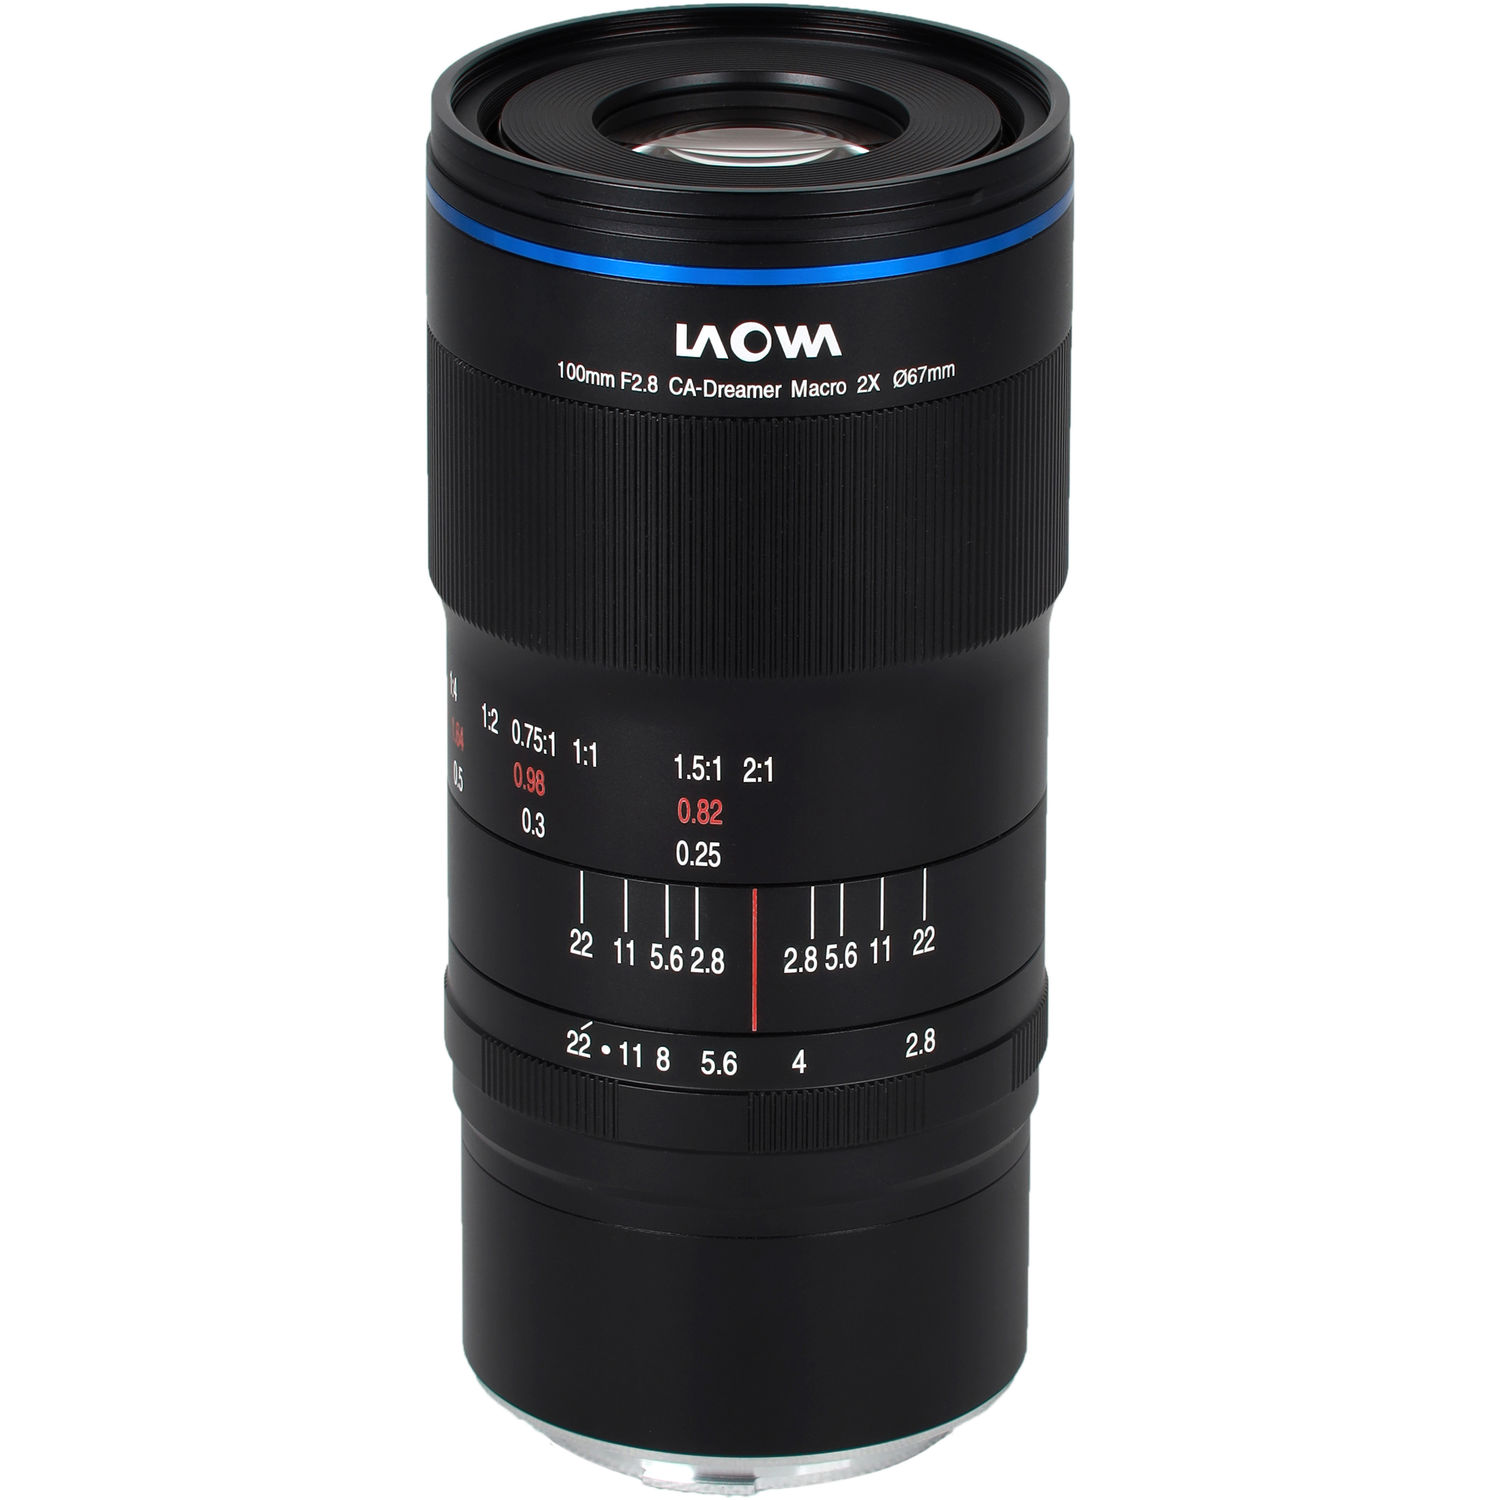 Venus Optics Laowa 100mm f/2.8 2X Ultra Macro APO Lens for Canon RF